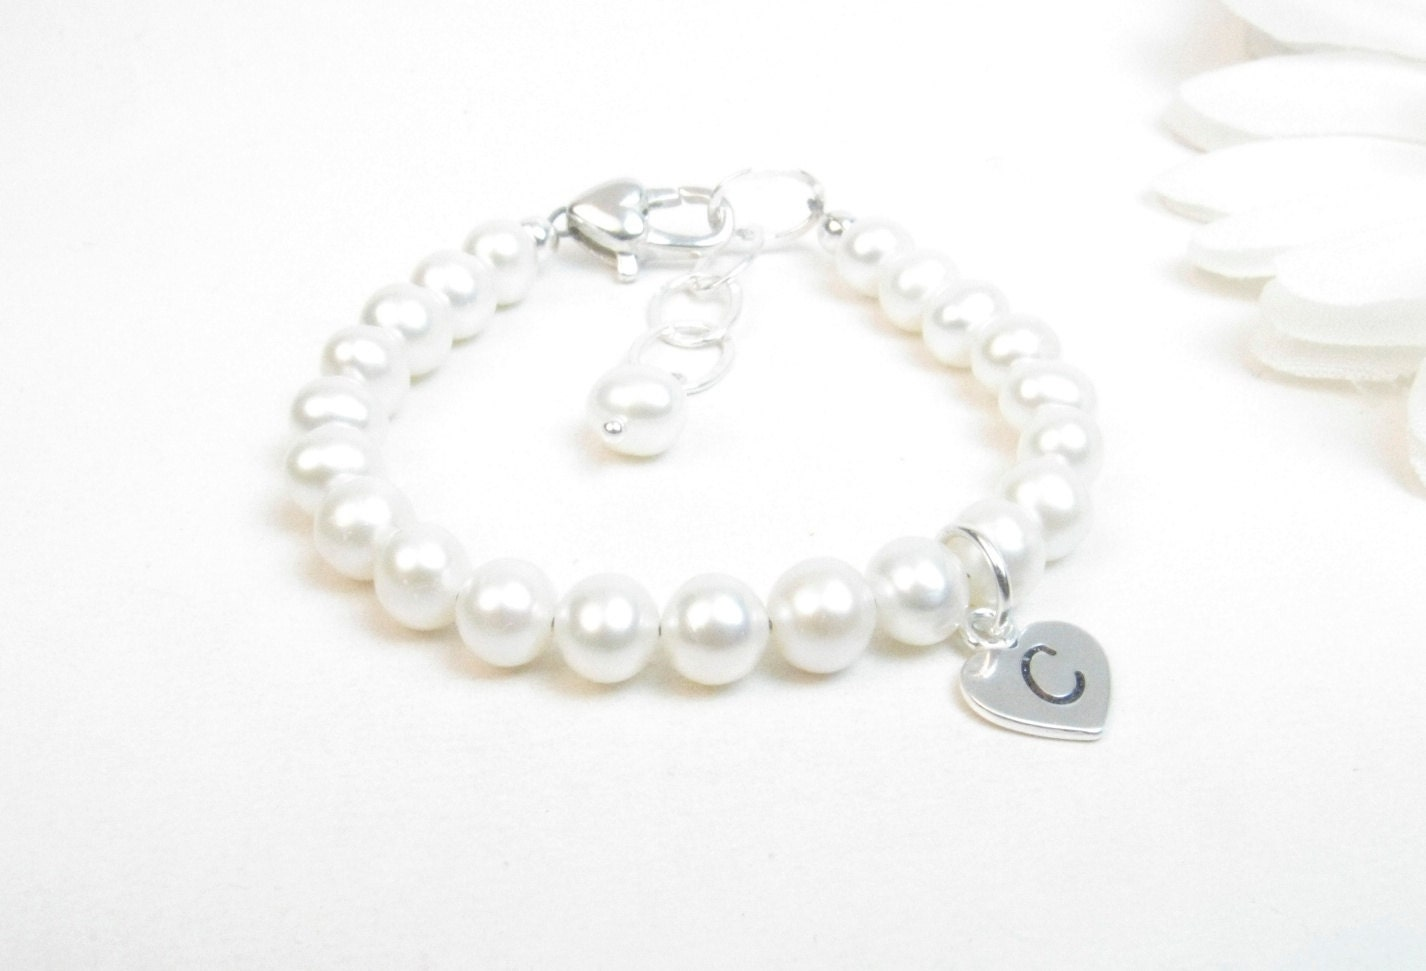 Flower Girl Bracelet with Freshwater Pearls and Hand Stamped Initial Heart Charm - pickledbeads